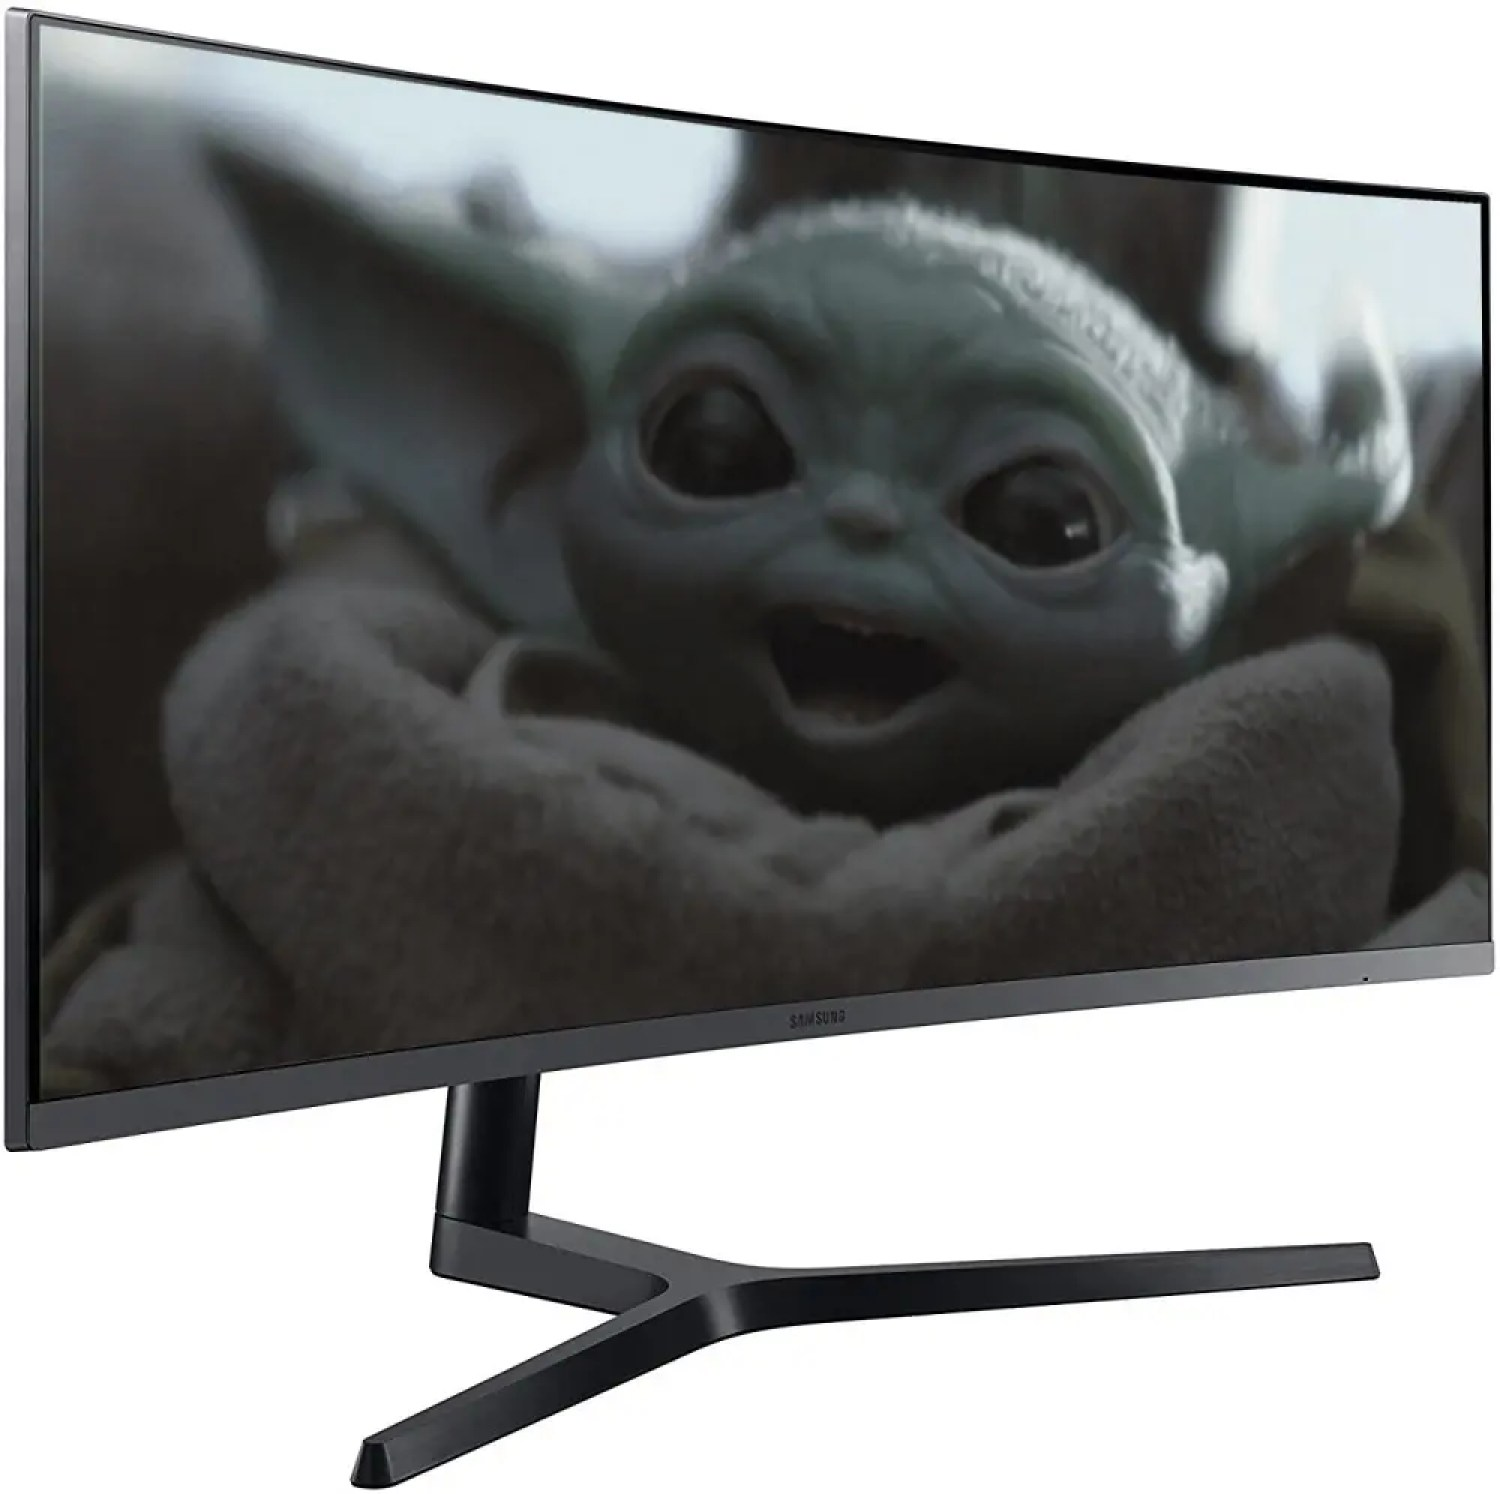 Baby Yoda on a Samsung monitor